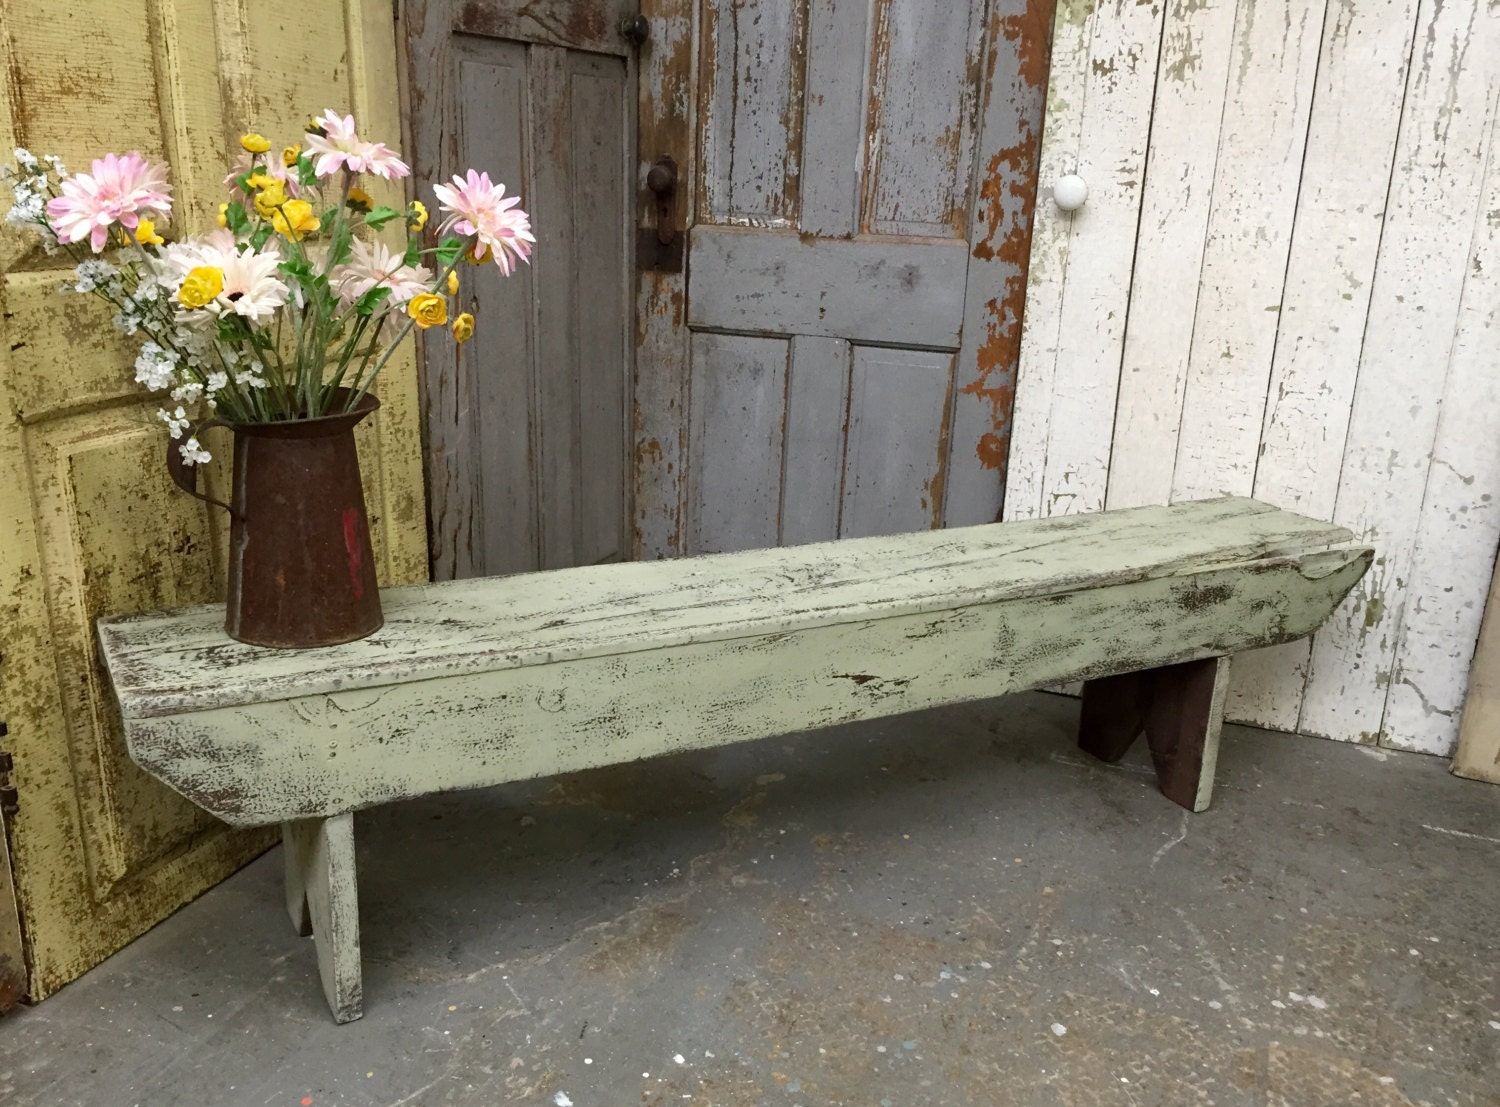 Vintage Bench Farmhouse Bench Rustic Wooden Bench Green